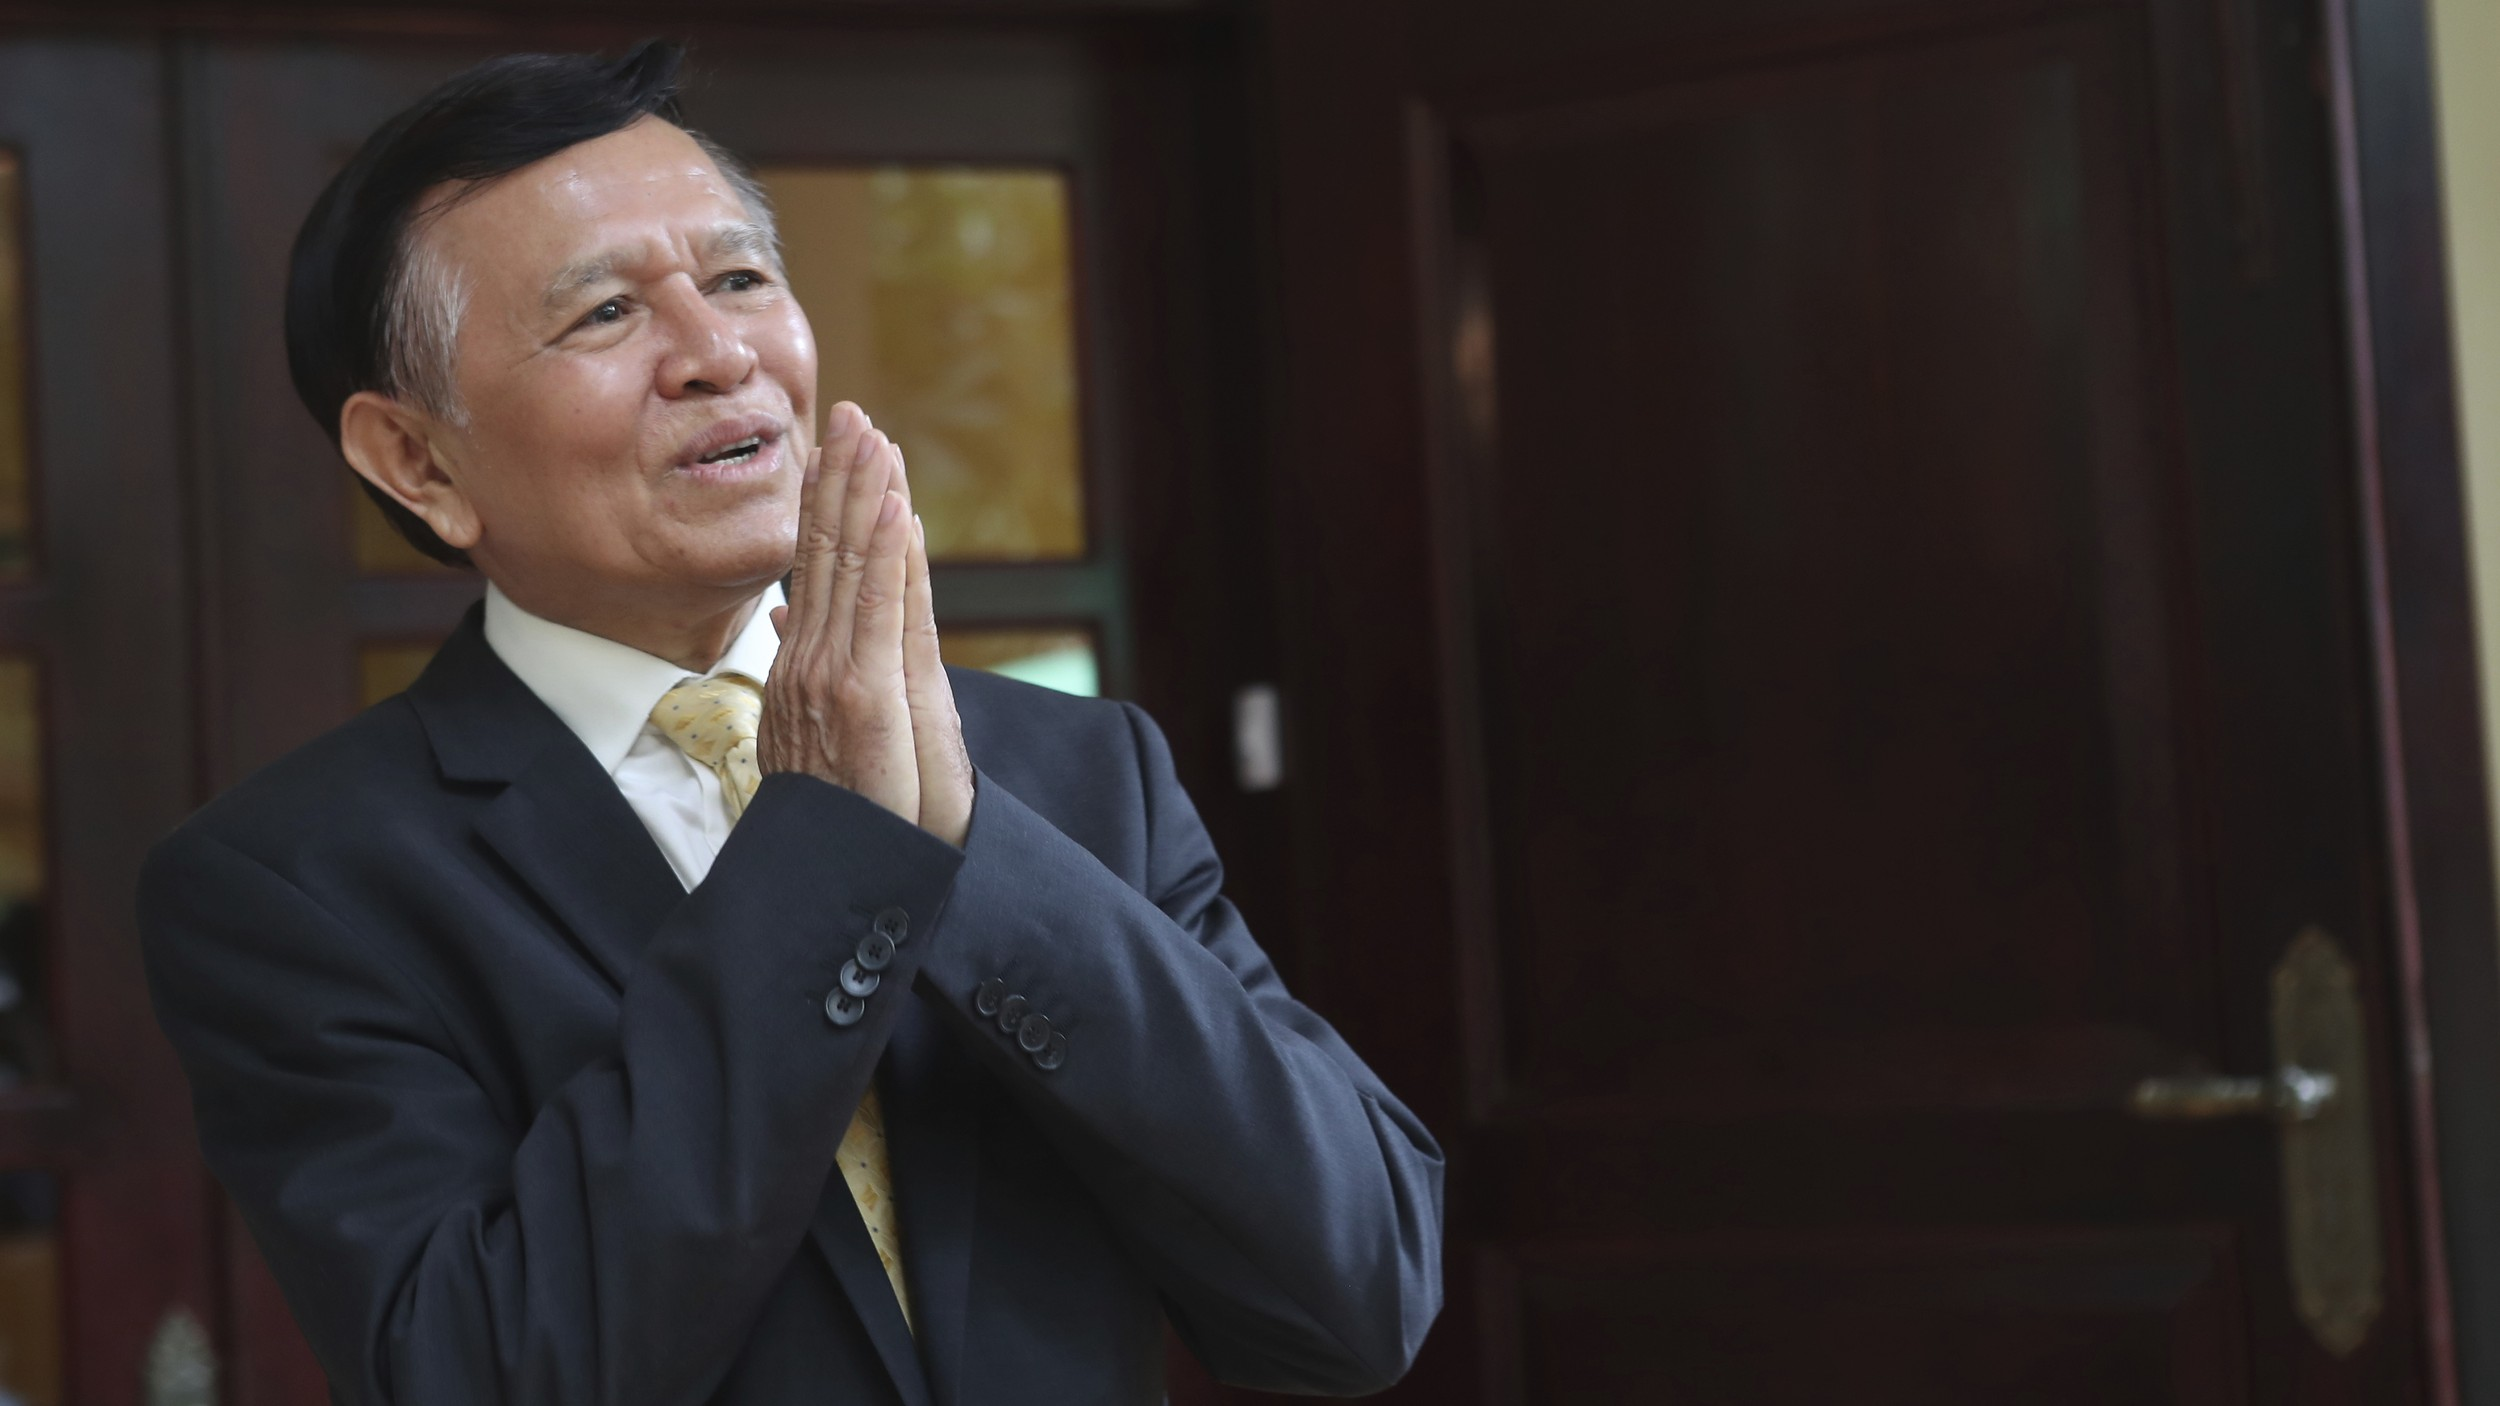 Cambodia begins treason trial of Opposition Leader Kem Sokha as criticism mounts